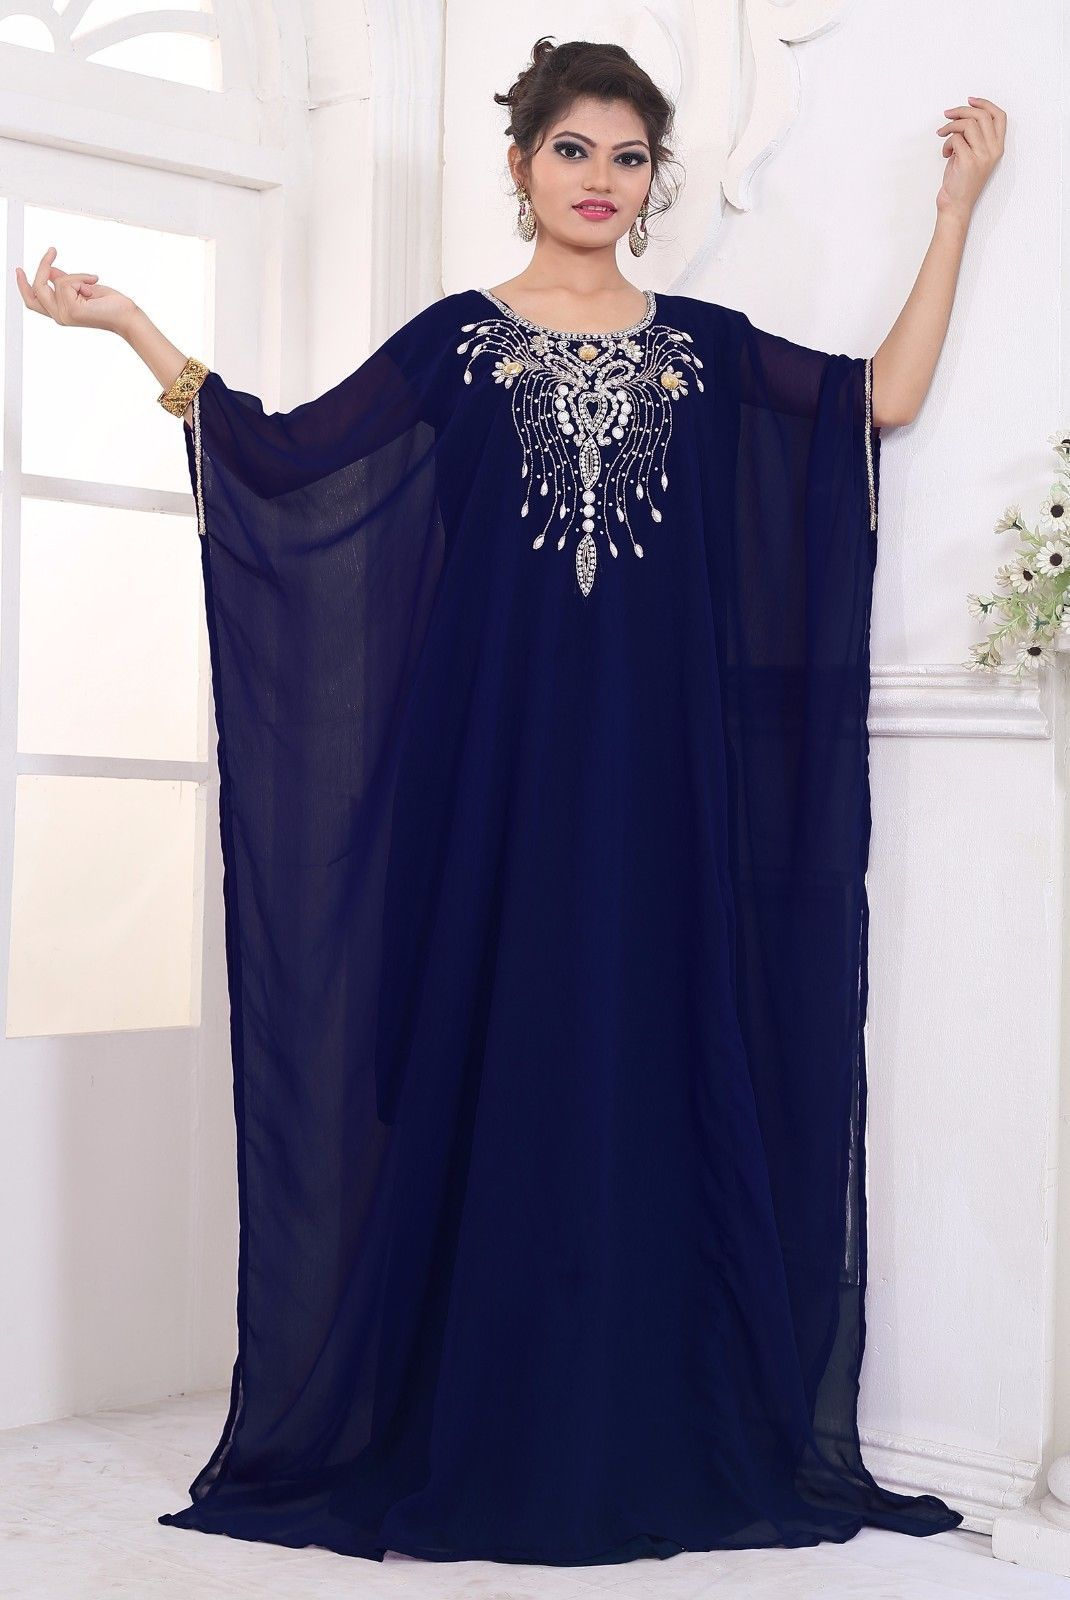 Weddings & Events Caftan Marocaine 2019 Luxury Beaded Dubai Kaftan Dress Three Quarter Sleeve Evening Dresses Saudi Arabian Prom Gown Formal Dress Crazy Price